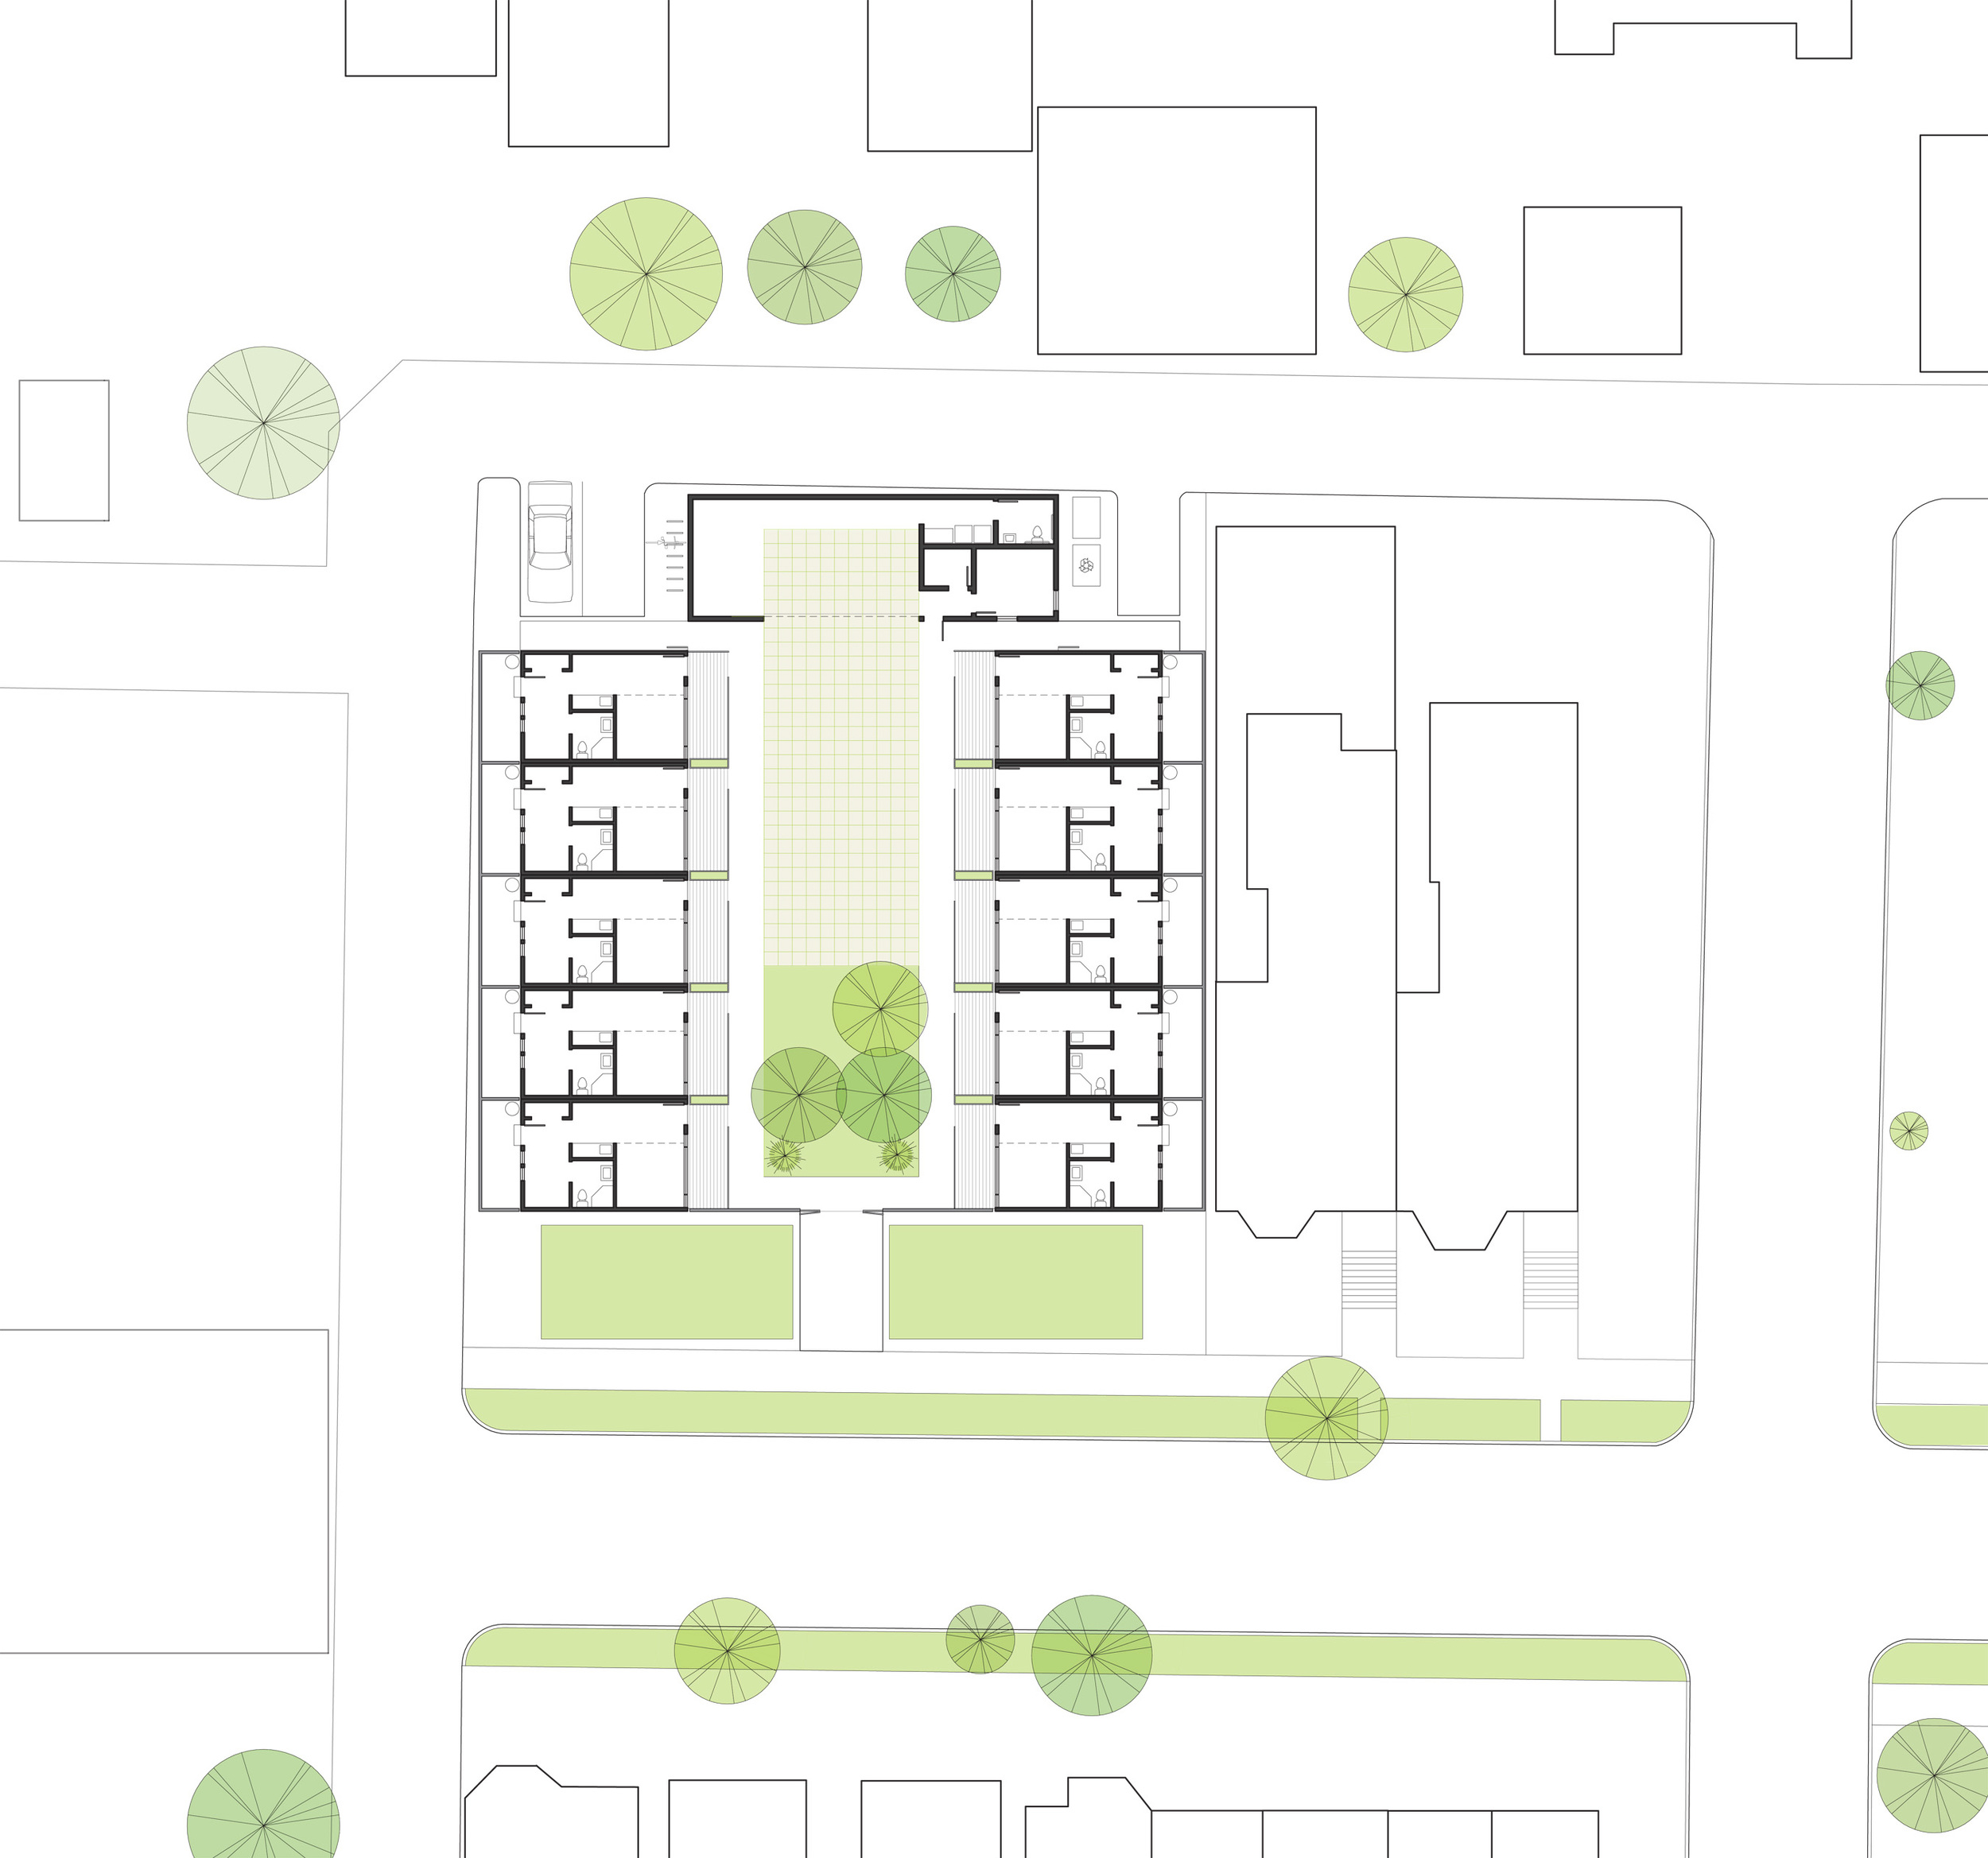 Site Plan of Complex